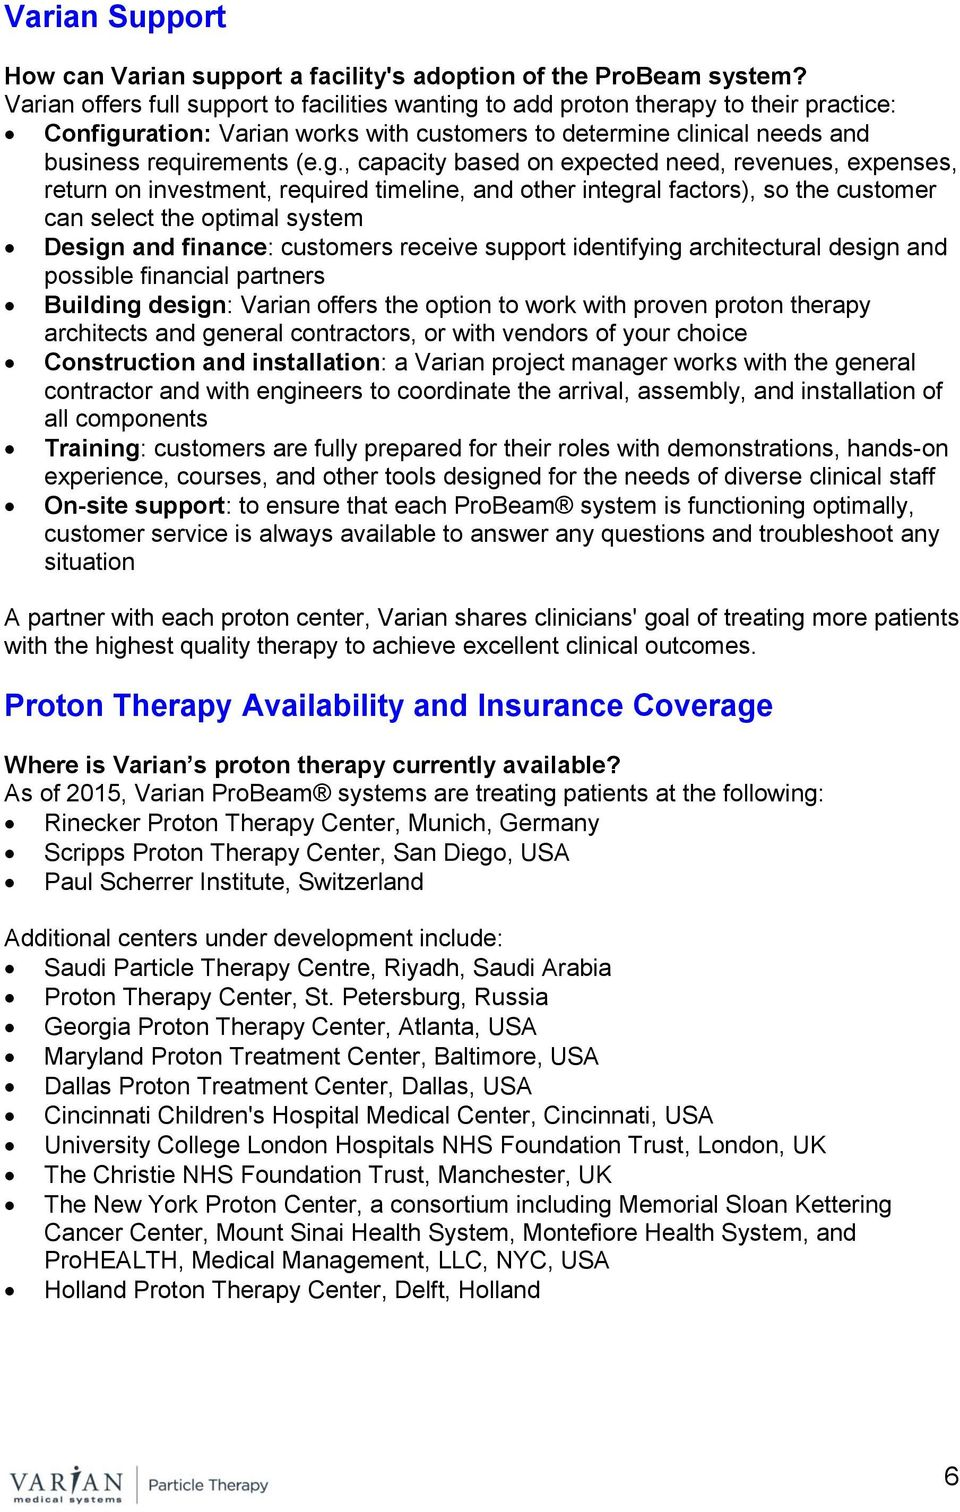 to add proton therapy to their practice: Configu